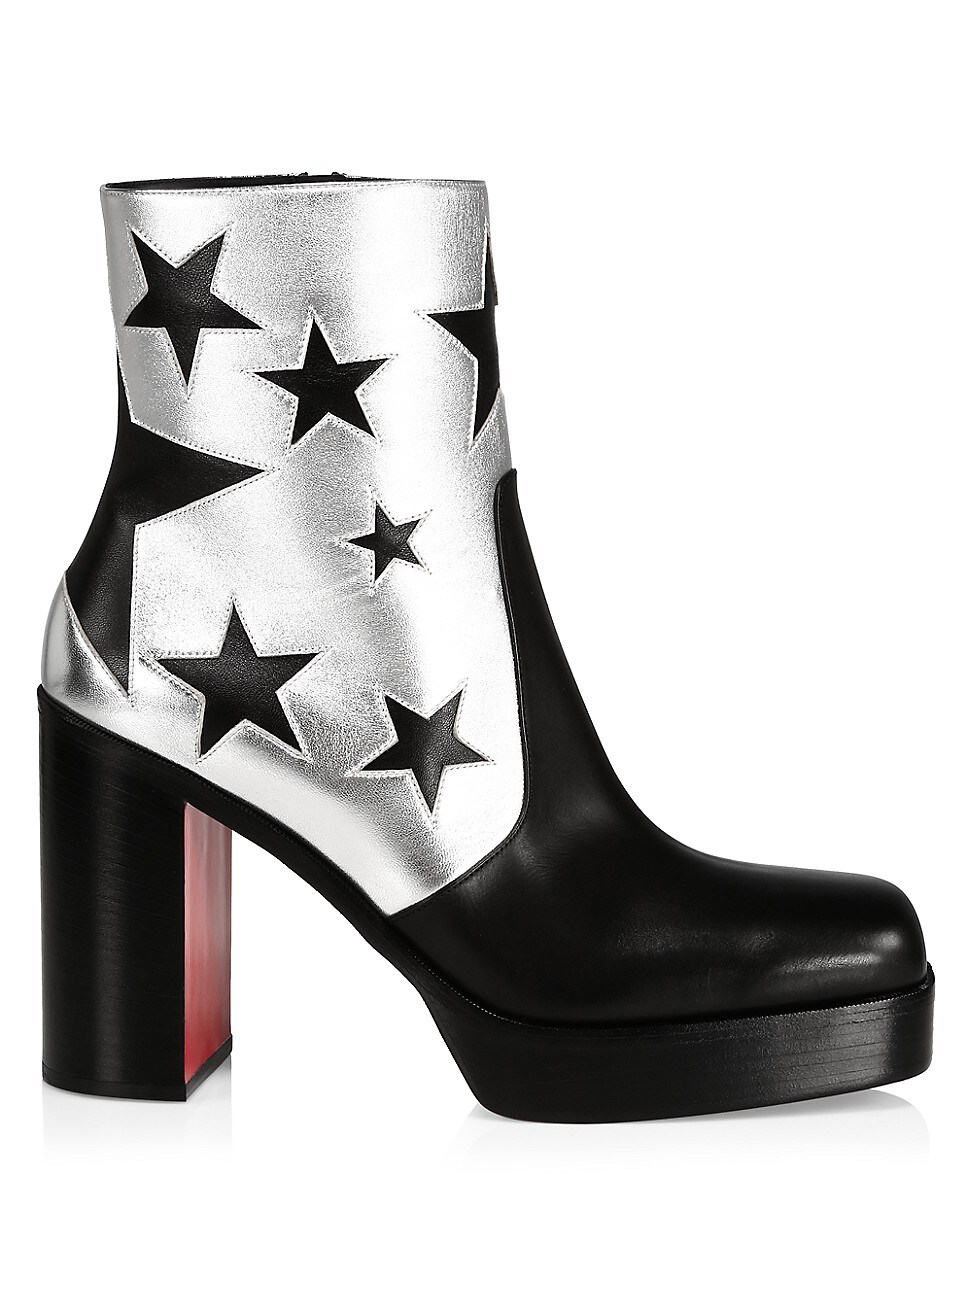 Christian Louboutin Men's Stage Leather Platform Starboots In Black Silver